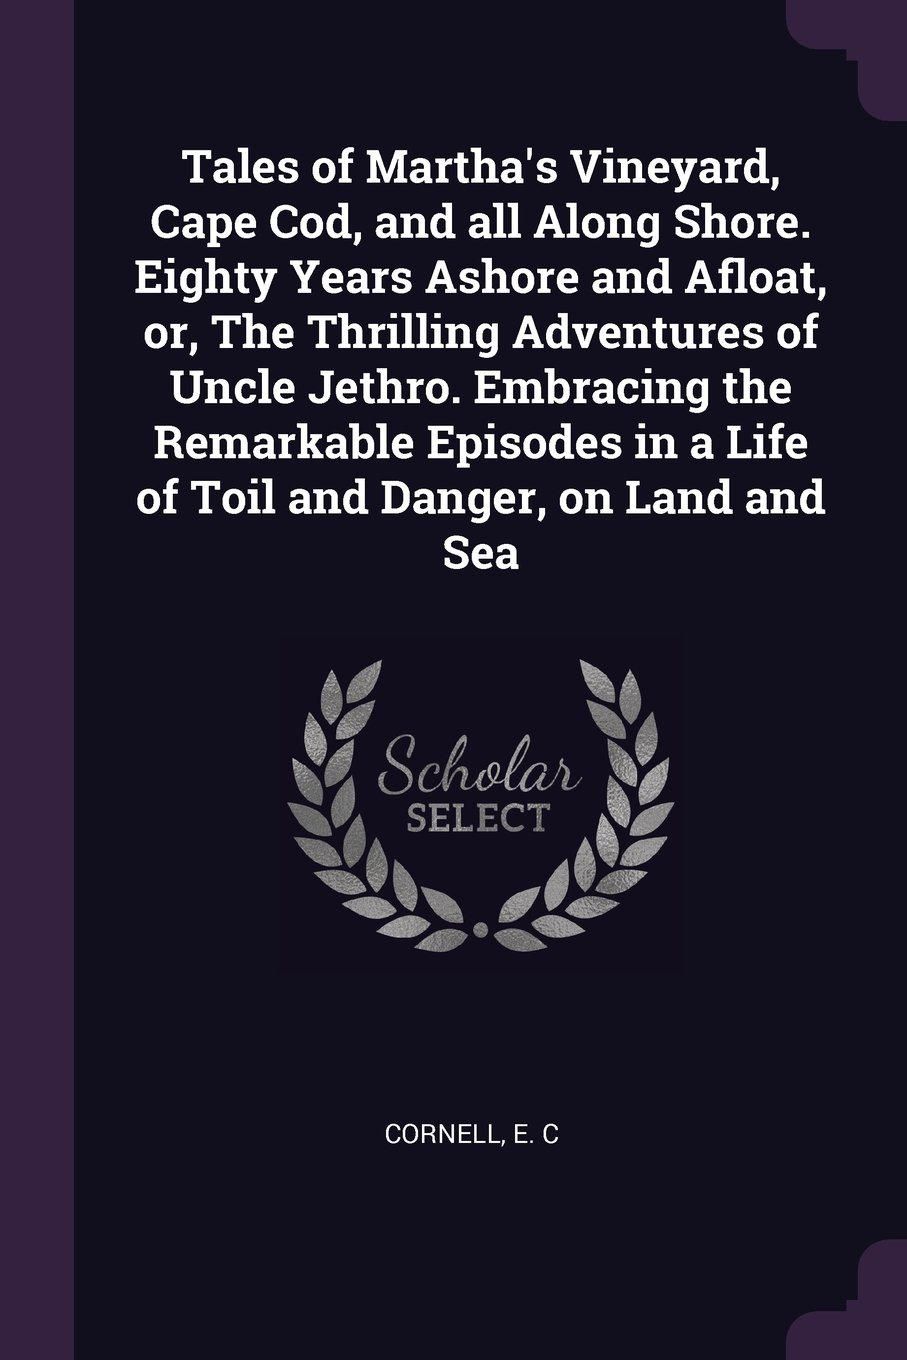 Read Online Tales of Martha's Vineyard, Cape Cod, and all Along Shore. Eighty Years Ashore and Afloat, or, The Thrilling Adventures of Uncle Jethro. Embracing the in a Life of Toil and Danger, on Land and Sea PDF